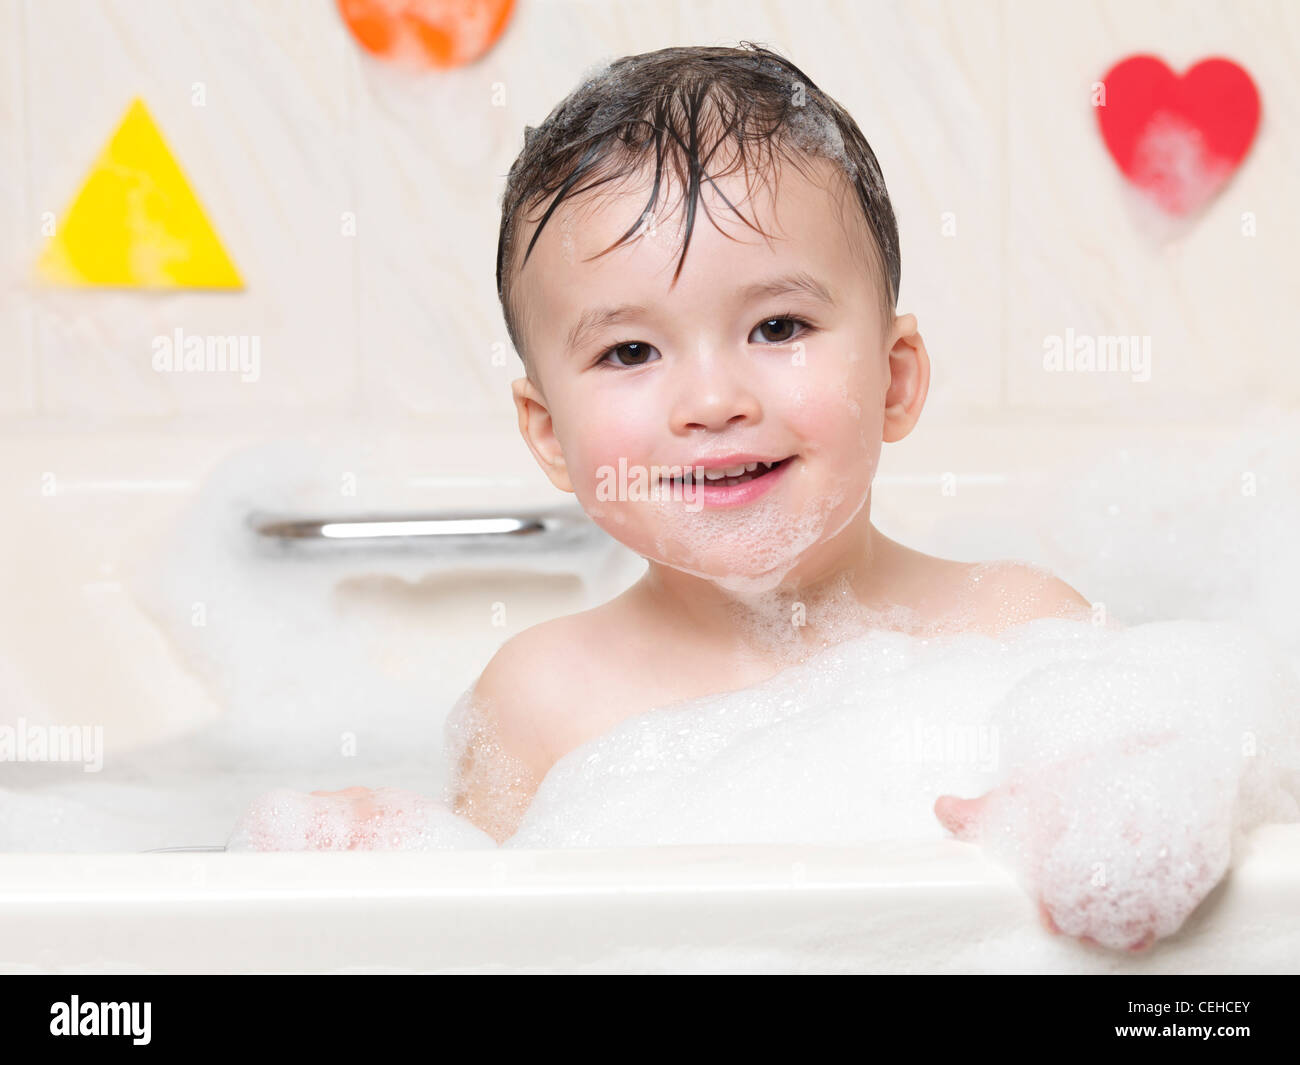 Cute smiling two year old child enjoying a bubble bath - Stock Image